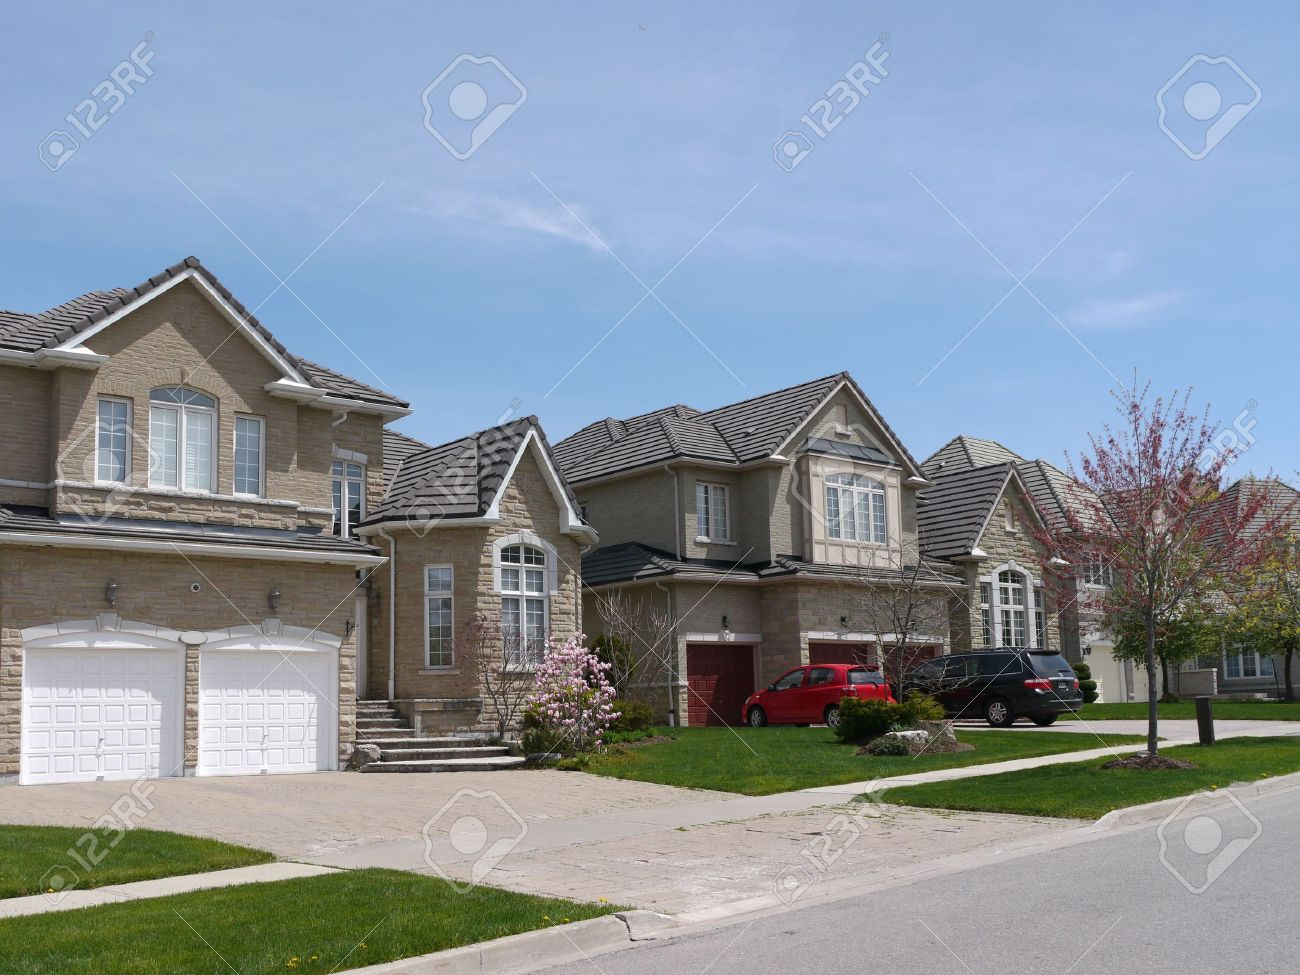 Chicago usa may 2011 suburban street with modern houses stock photo 9889453